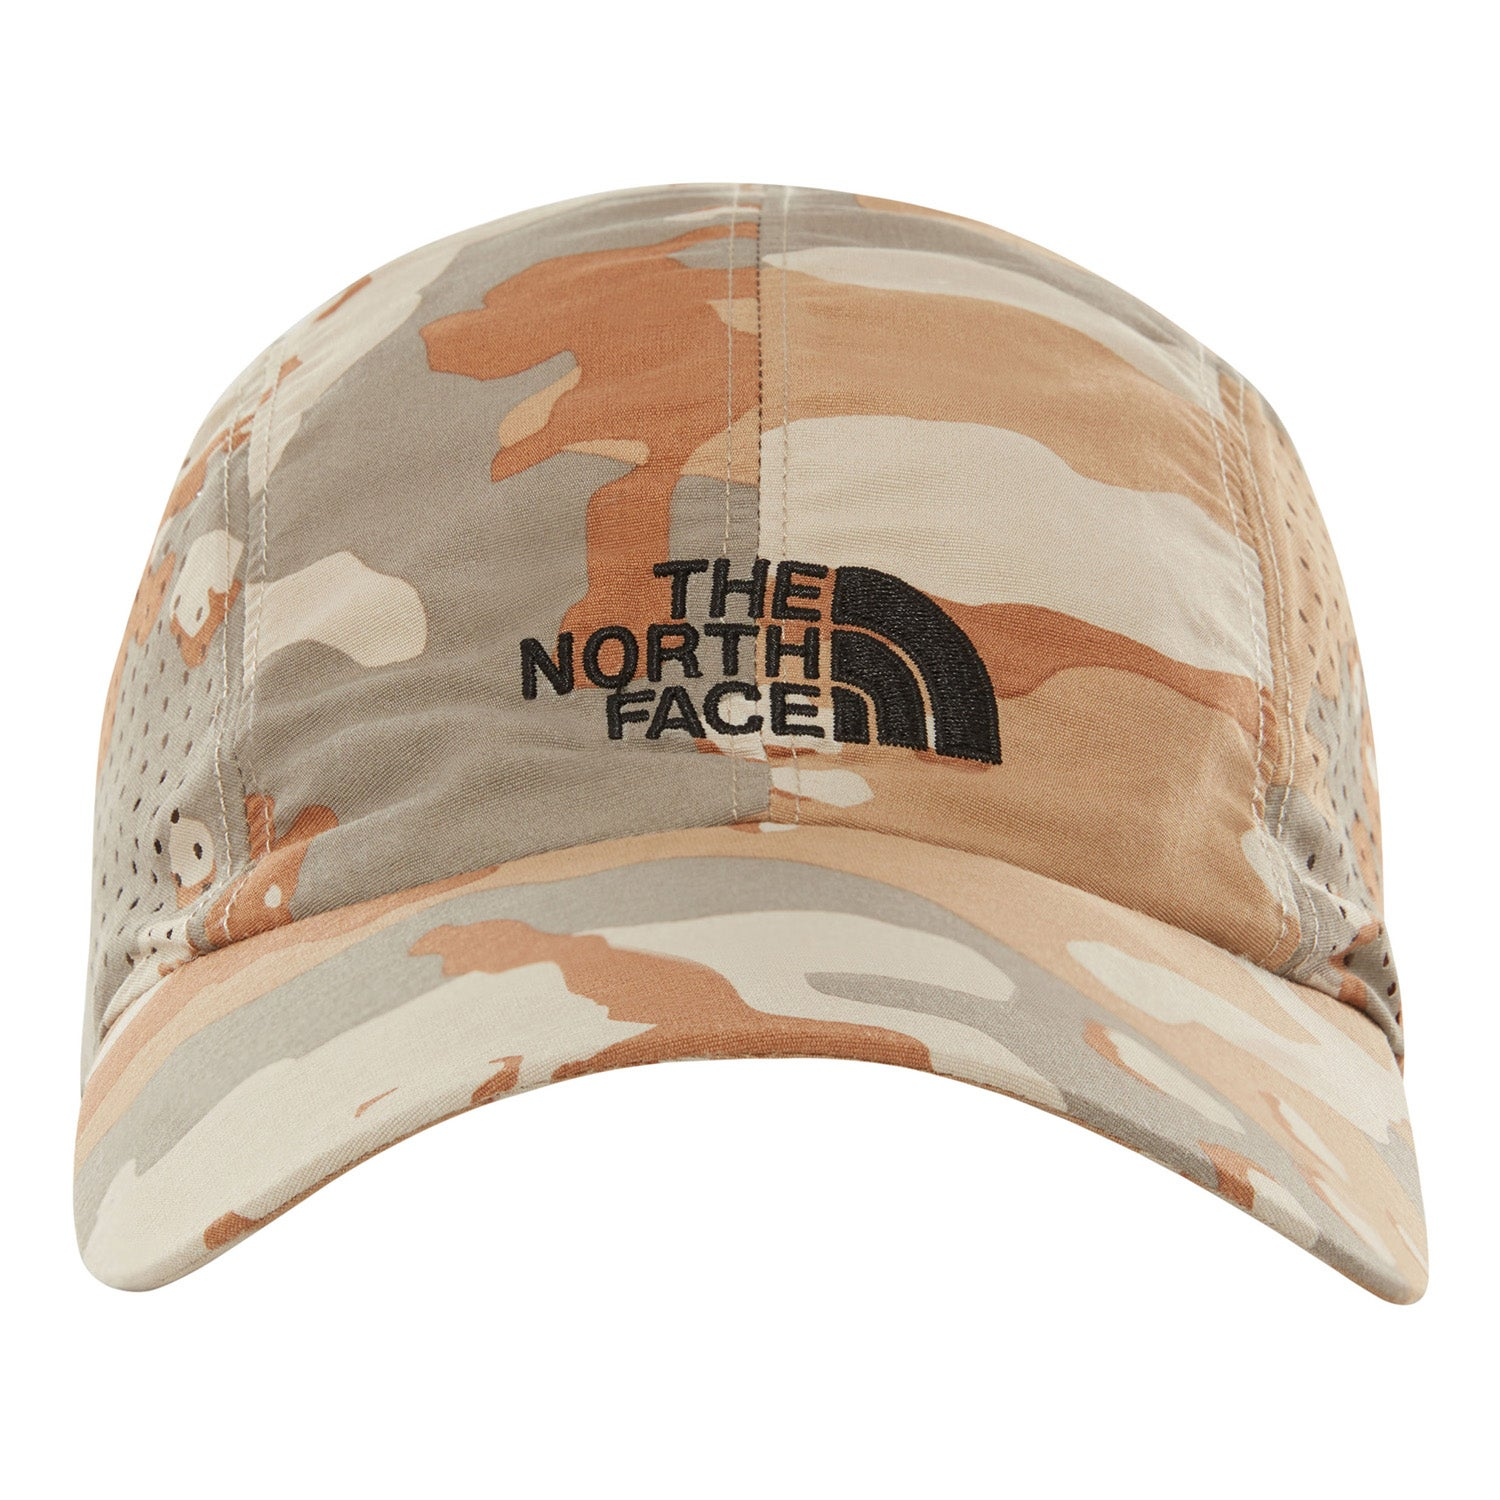 7d156903d11 The North Face Sun Shield Ball Unisex Headwear Cap - Khaki Desert ...